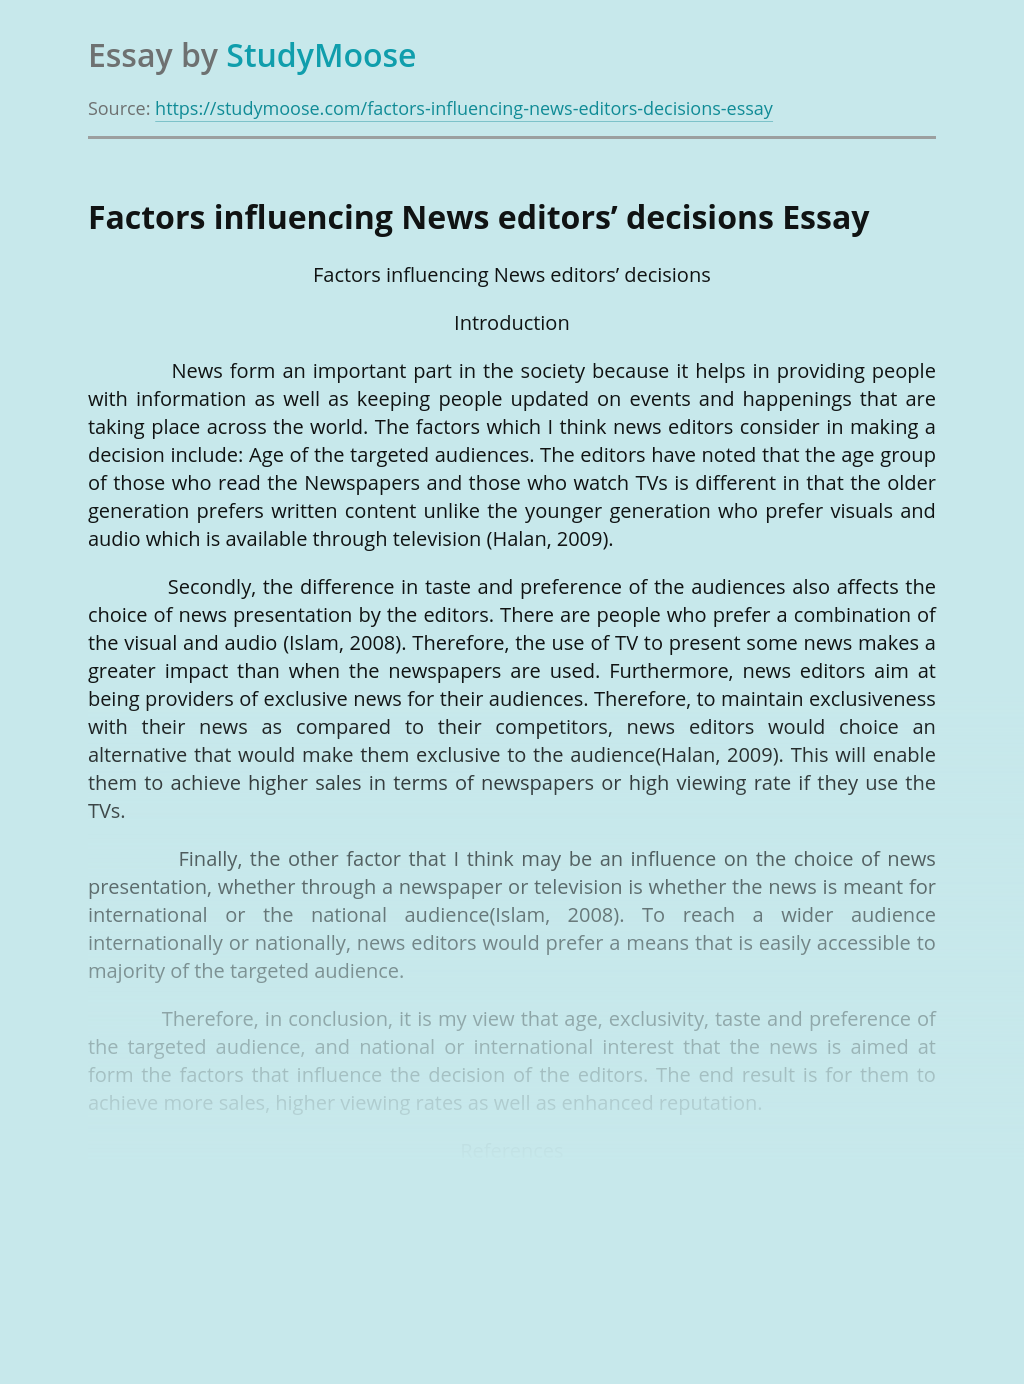 Factors influencing News editors' decisions